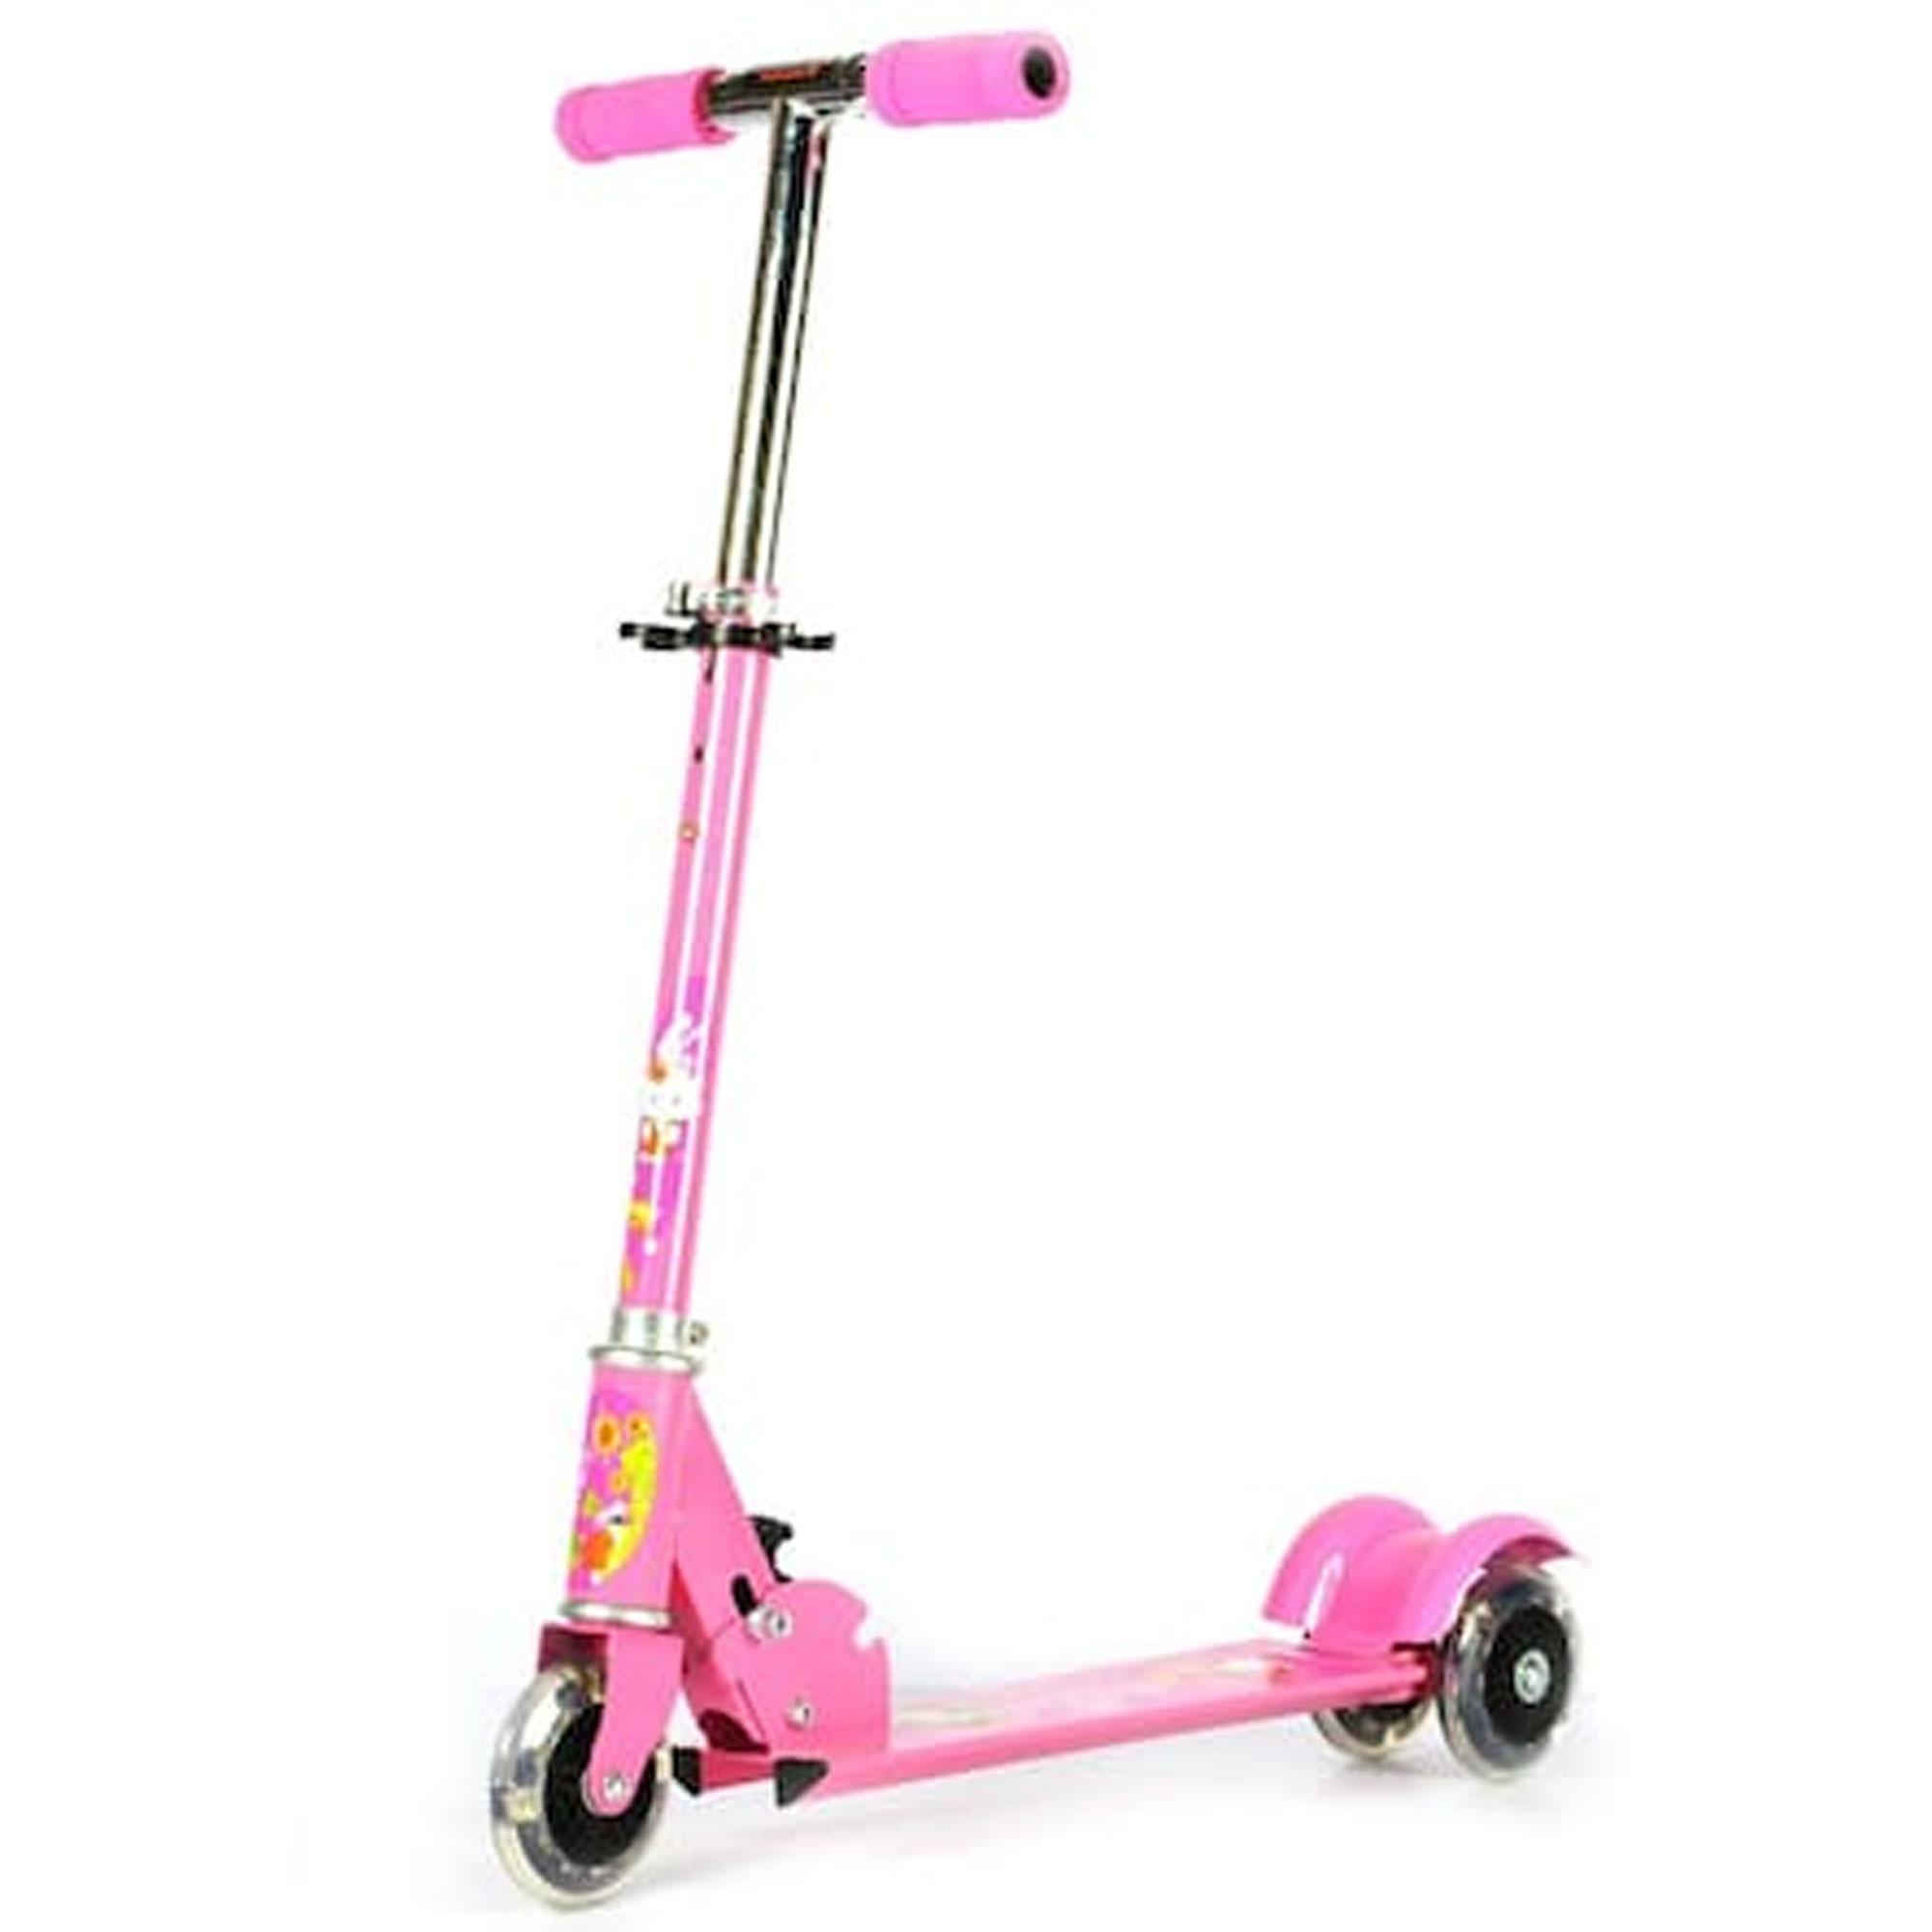 3 Wheels Kick Riding Kid Scooter (pink) By Gonzalez General Merchandise.